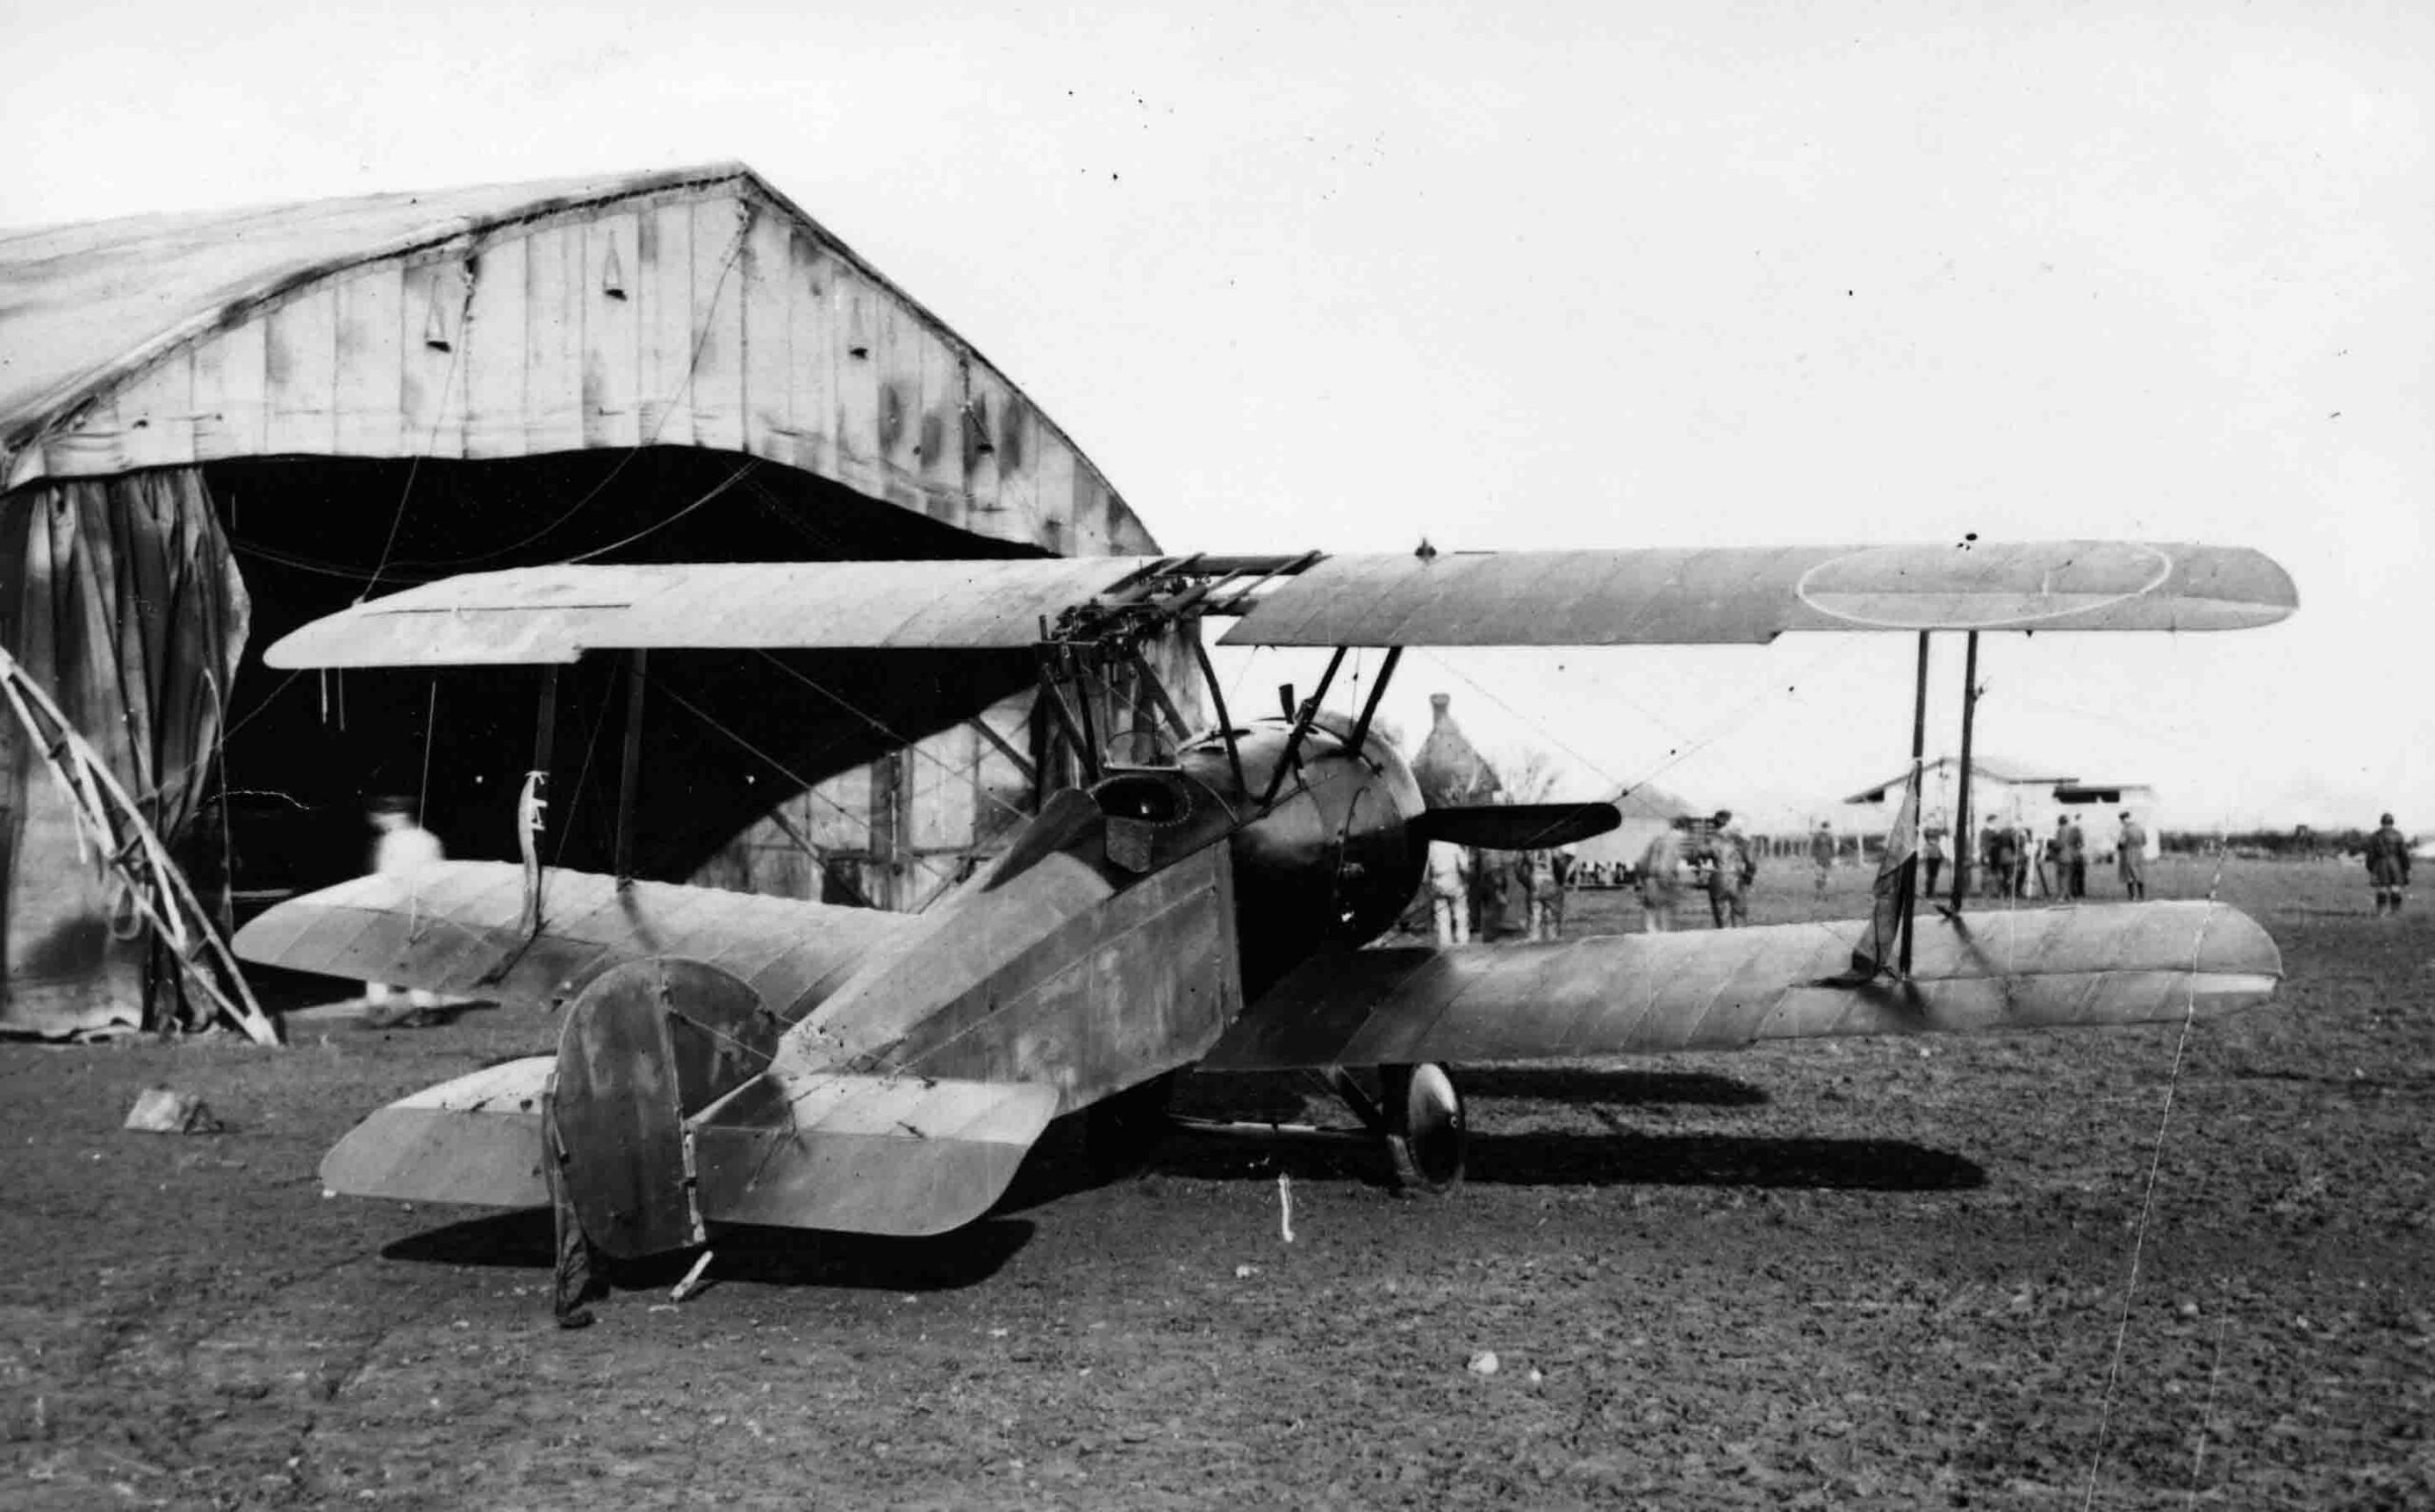 X003-2602/15426: Sopwith F.1/3 Comic-Type Camel.  This 50 Squadron, RAF, aircraft was based at Bekesbourne when photographed in 1918. Home Defence roundels were applied to the upper wing, while the fuselage roundels and rudder stripes were obliterated.  Streamers were attached to the rear interplane struts and rudder.